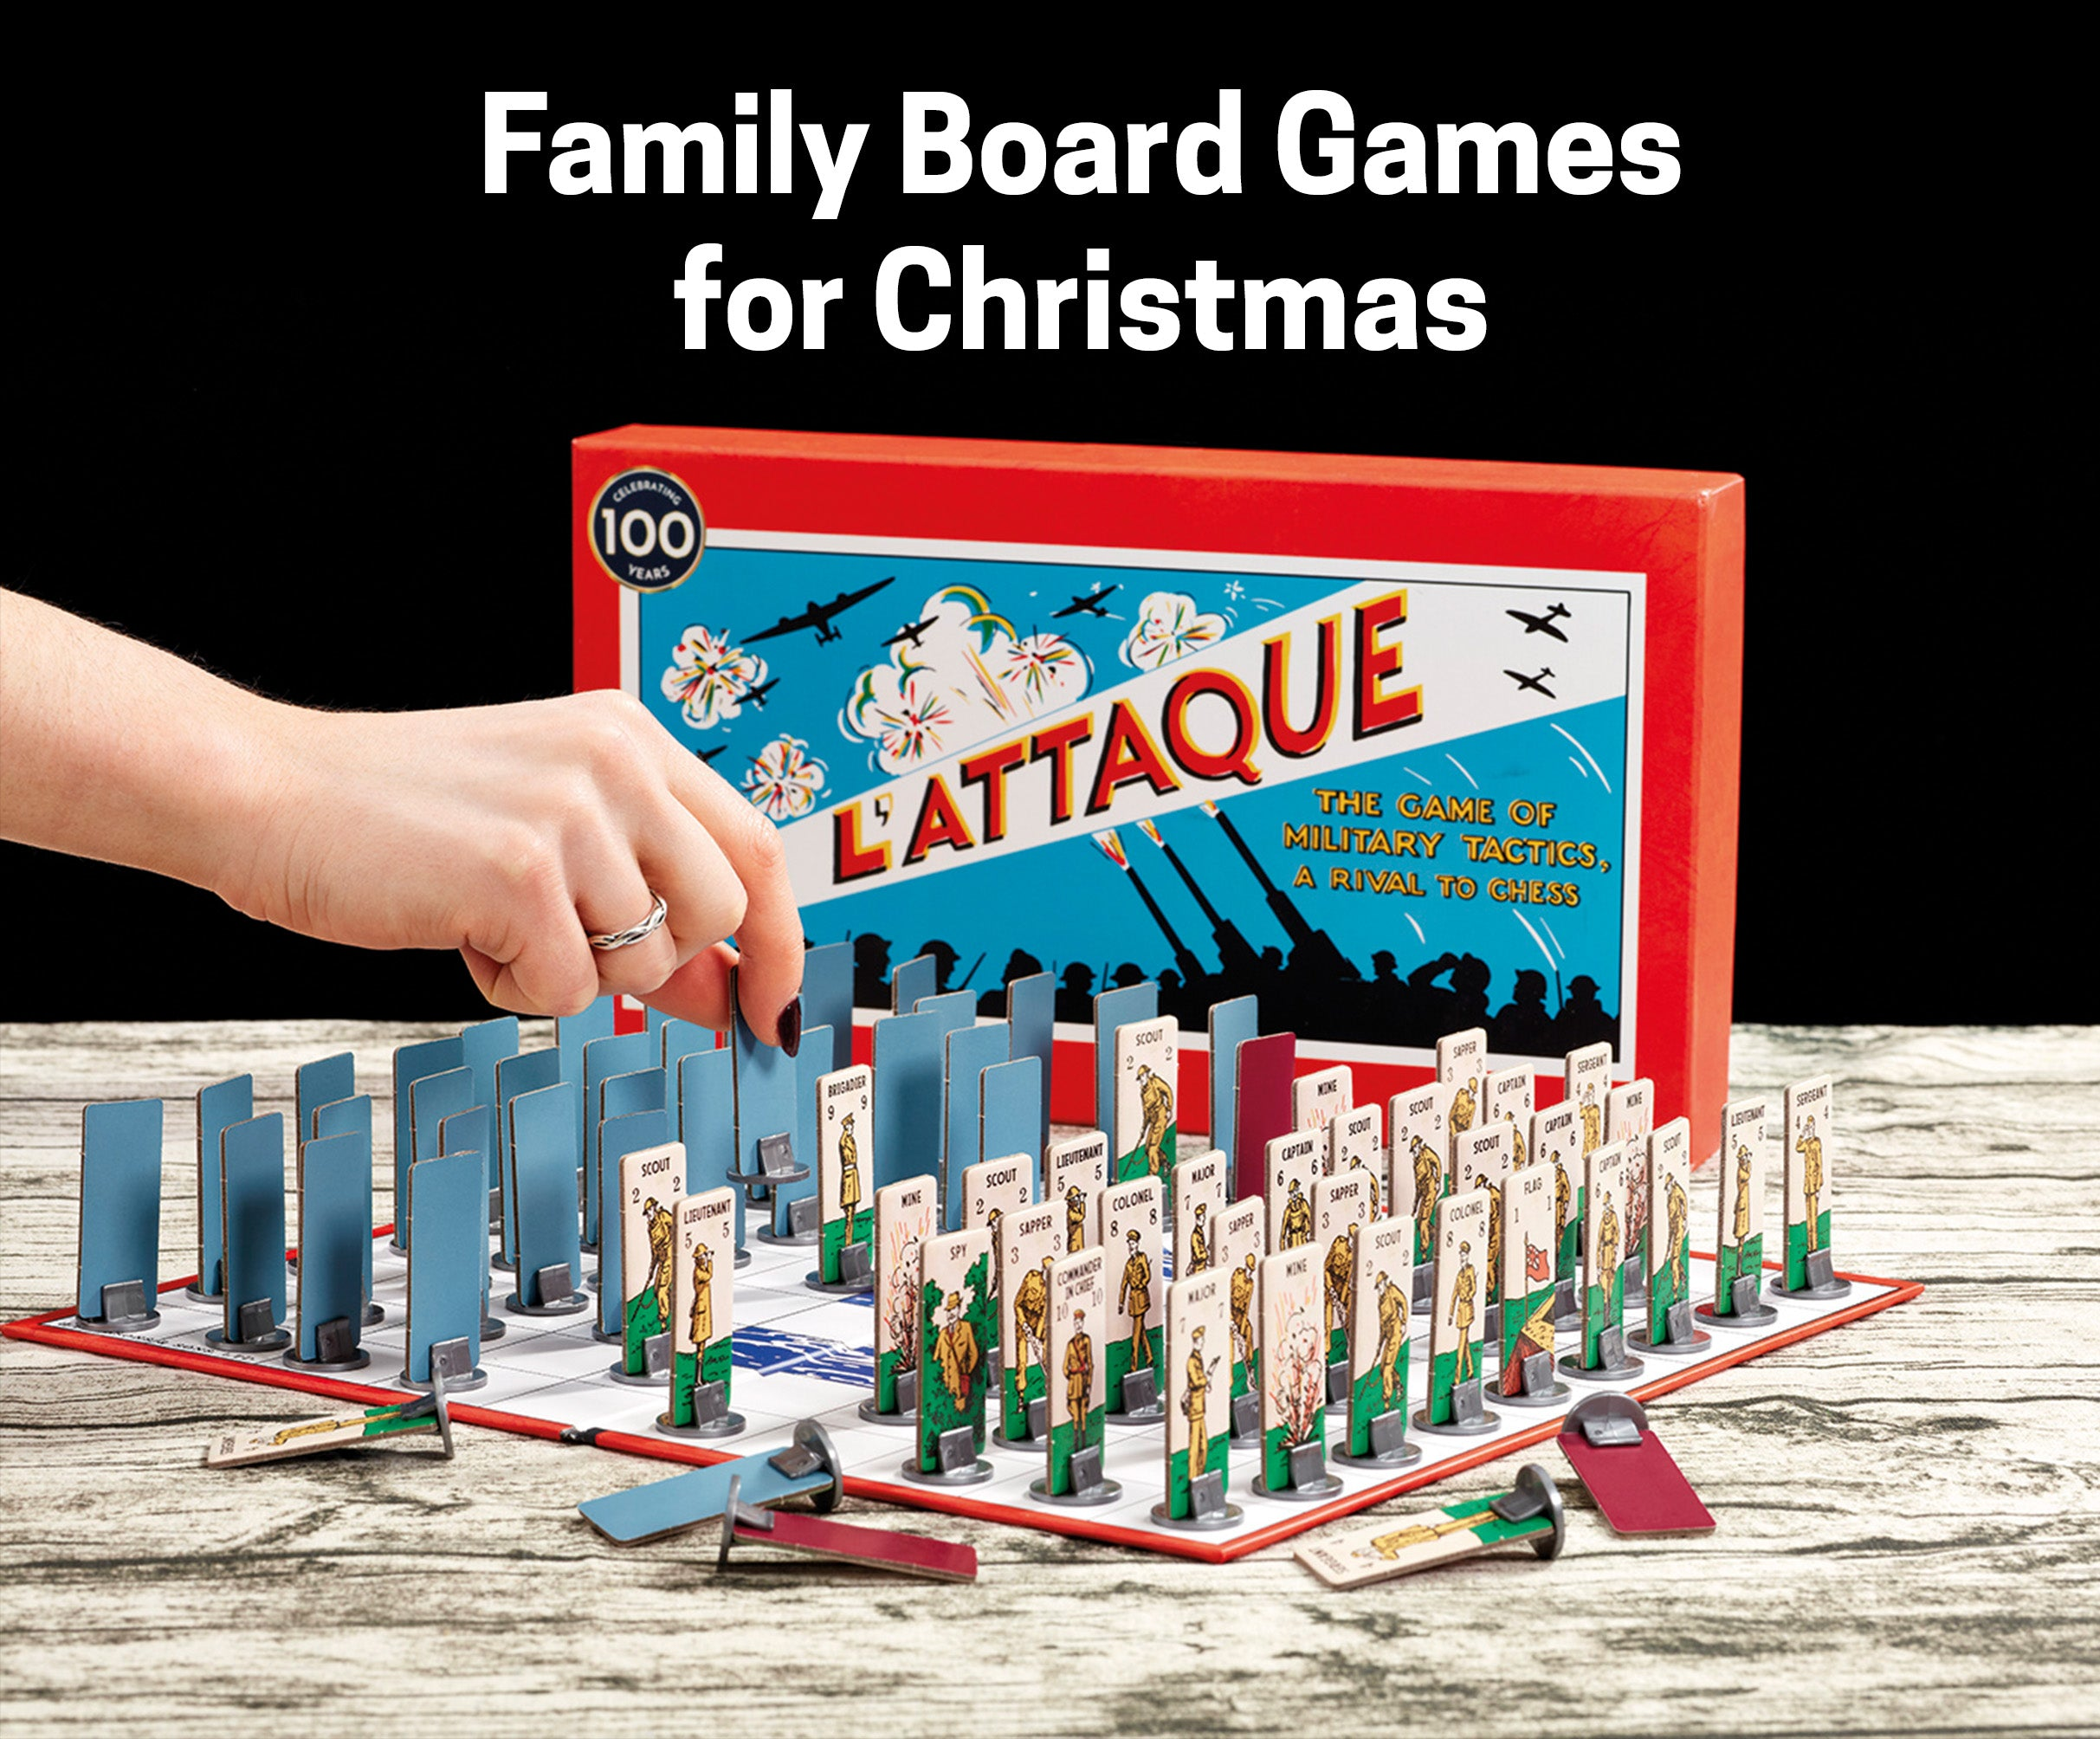 Our Family Board Games